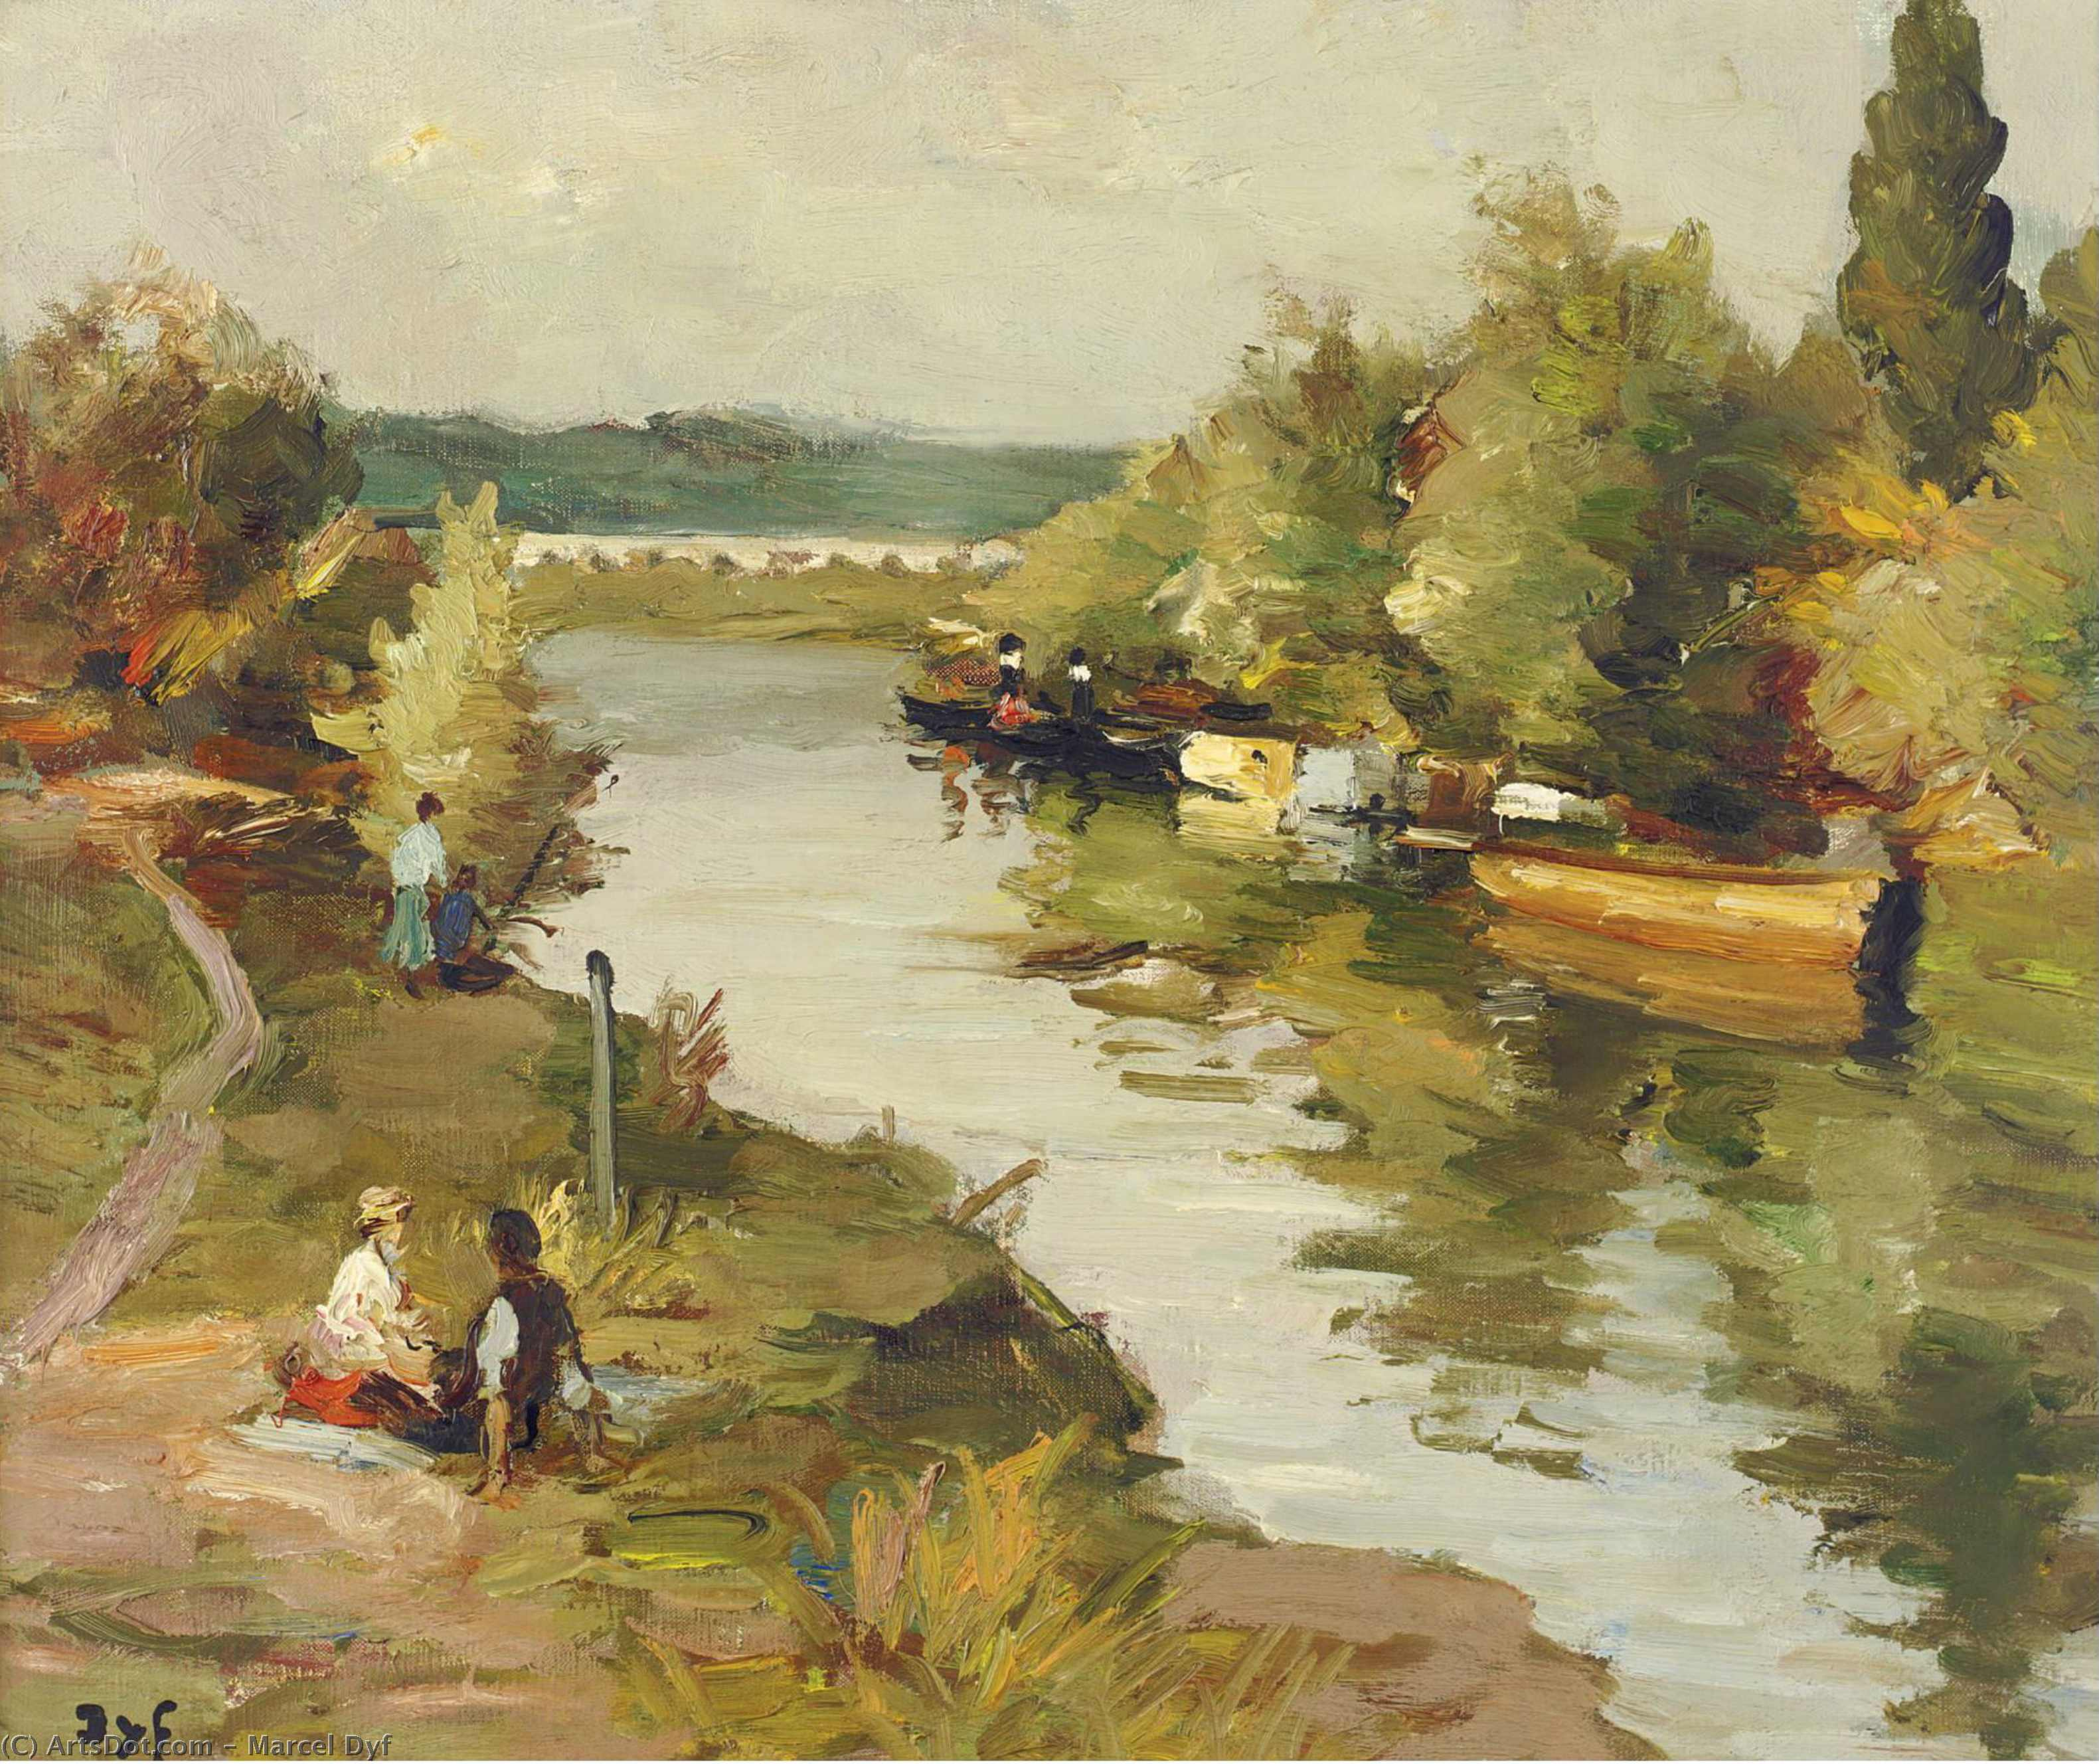 River at Amoureux, (1955) by Marcel Dyf (1899-1985, France)